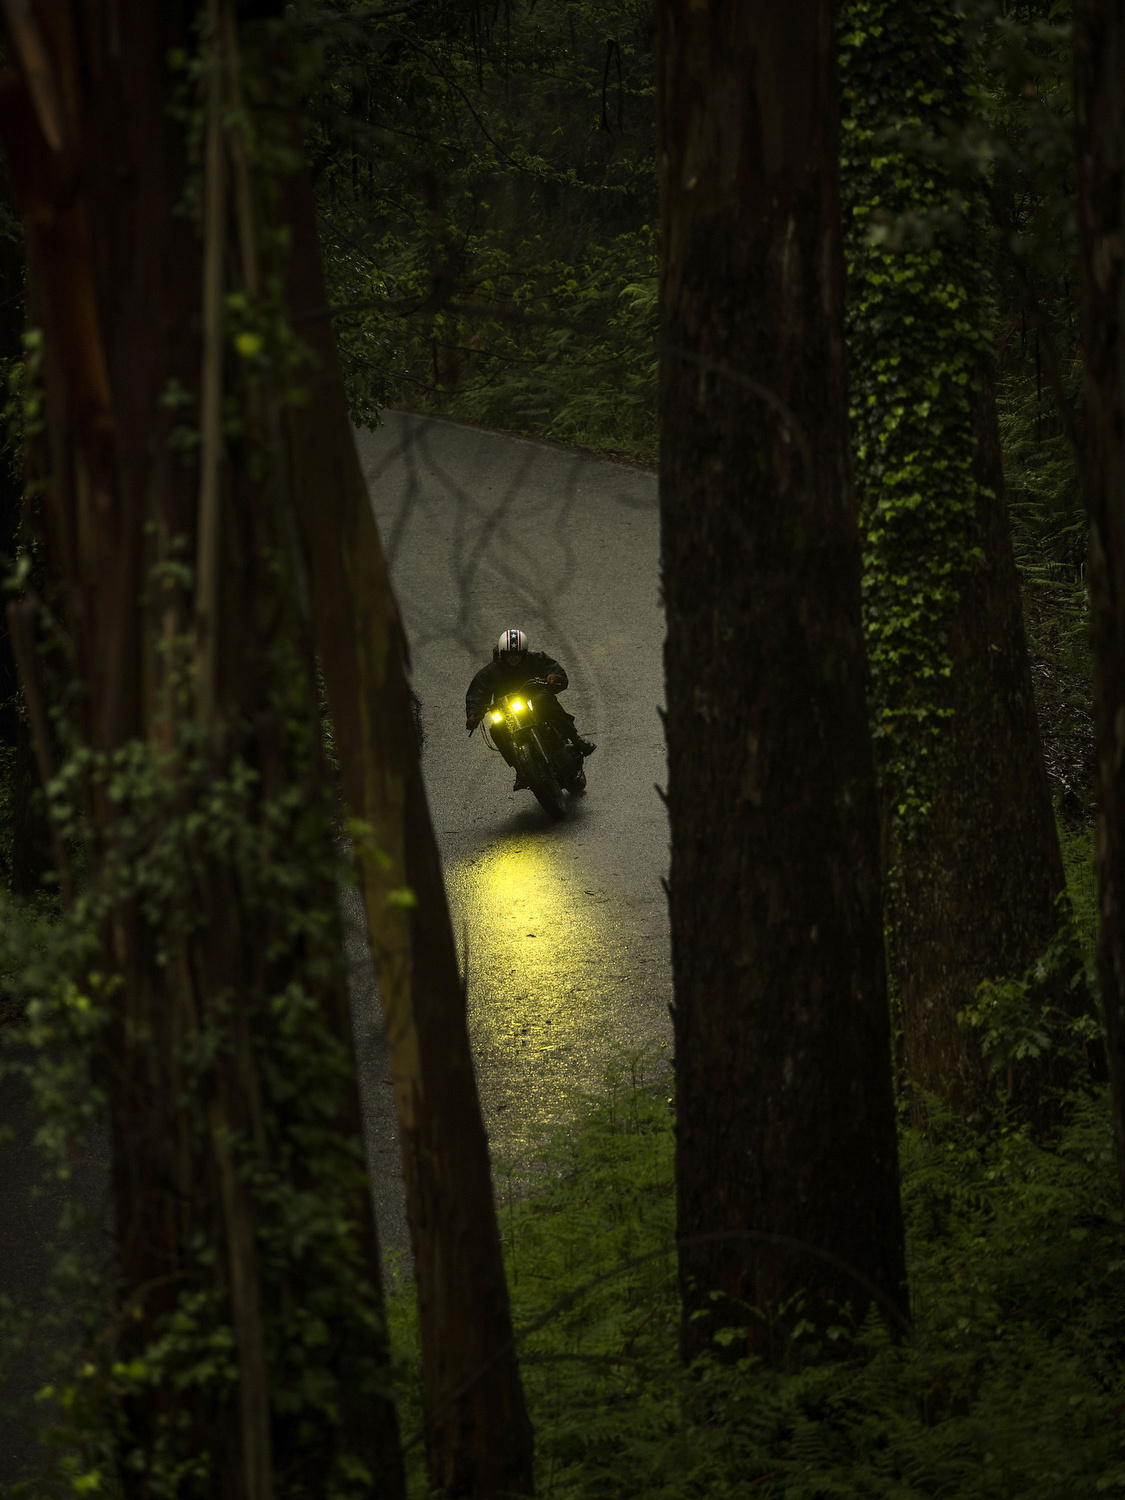 El Solitario's co-founder  Valeria Libano  drives the  Malo/Bueno  through  Santa María de Oia forest  on May 1, 2015, in Galician  Rias Baixas , Spain. Ex commodity trader  David Borrás and his wife fashion designer Valeria Líbano founded El Solitario Motorcycles as a personal bet to offer their own style of conceiving motorcycles and the fashion market related with them. Malo/Bueno is the customization of a 1200cc  Harley Davidson Sportster.  Cast sculptors, a community trader and a musician have something in common: they have made the passion of customizing motorbikes their own business. Valtoron Sculptured Motorcycles, Café Racer Obsession and El Solitario Motorcycles are the dreams-come-true of the Delgado Brothers, Federico Ruiz and David Borrás.